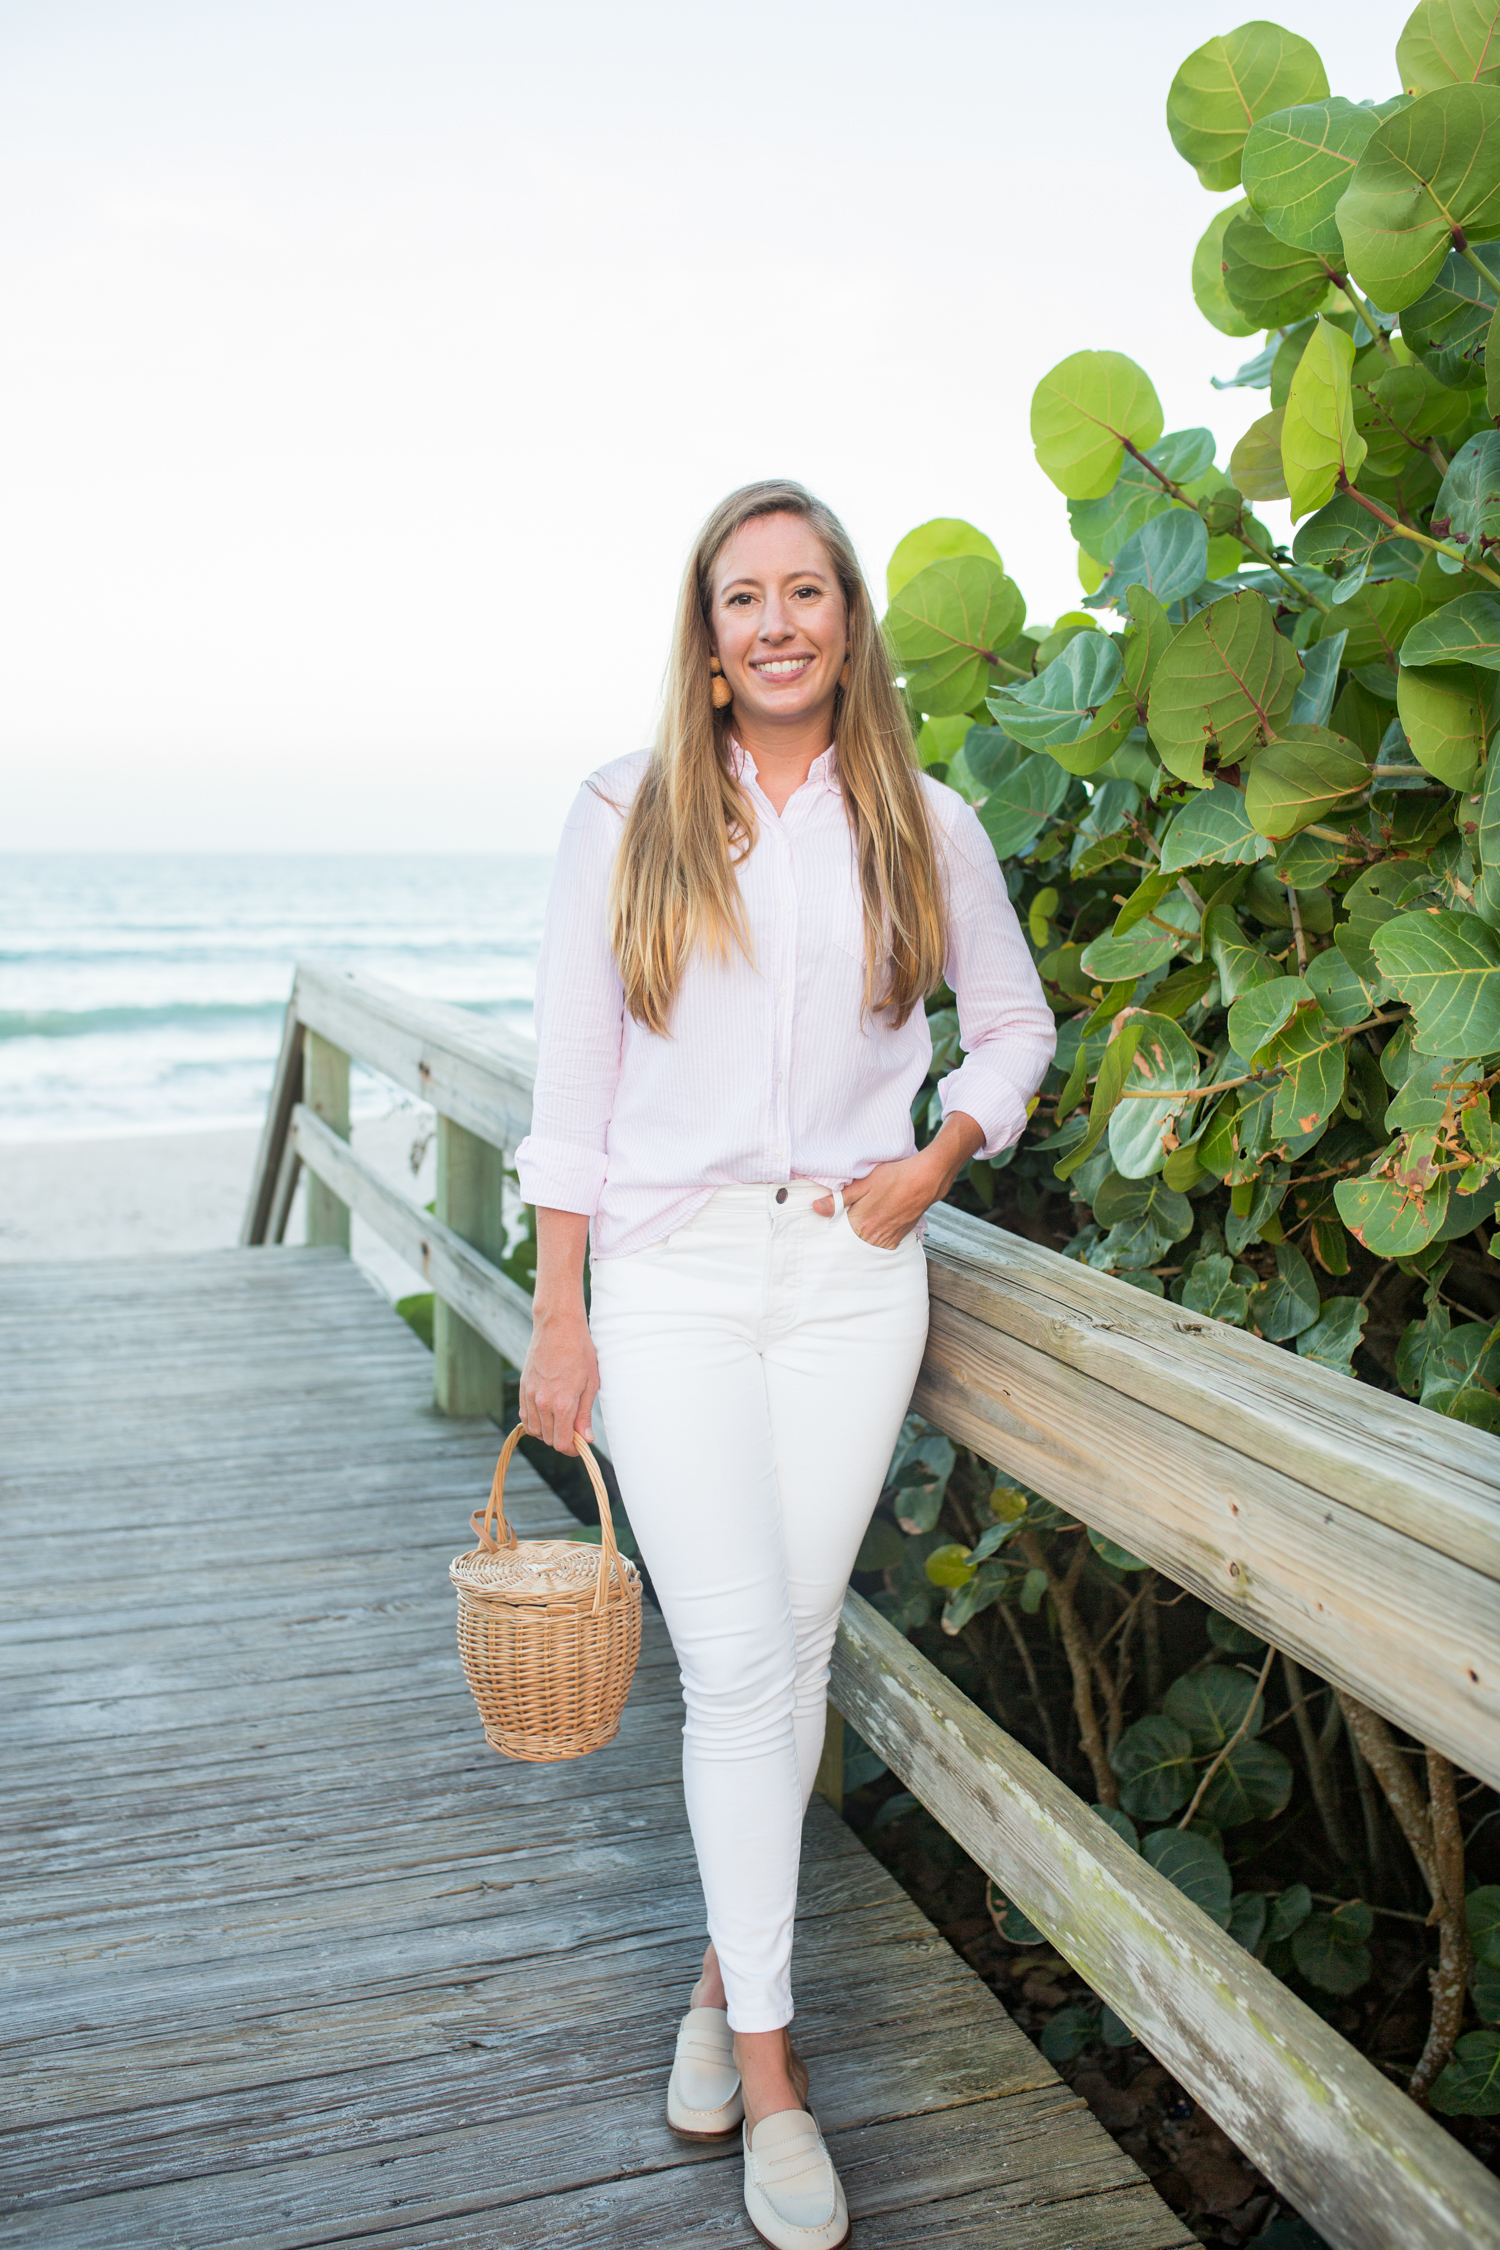 Woman at the beach wearing pink button down top and white jeans as timeless wardrobe essentials.